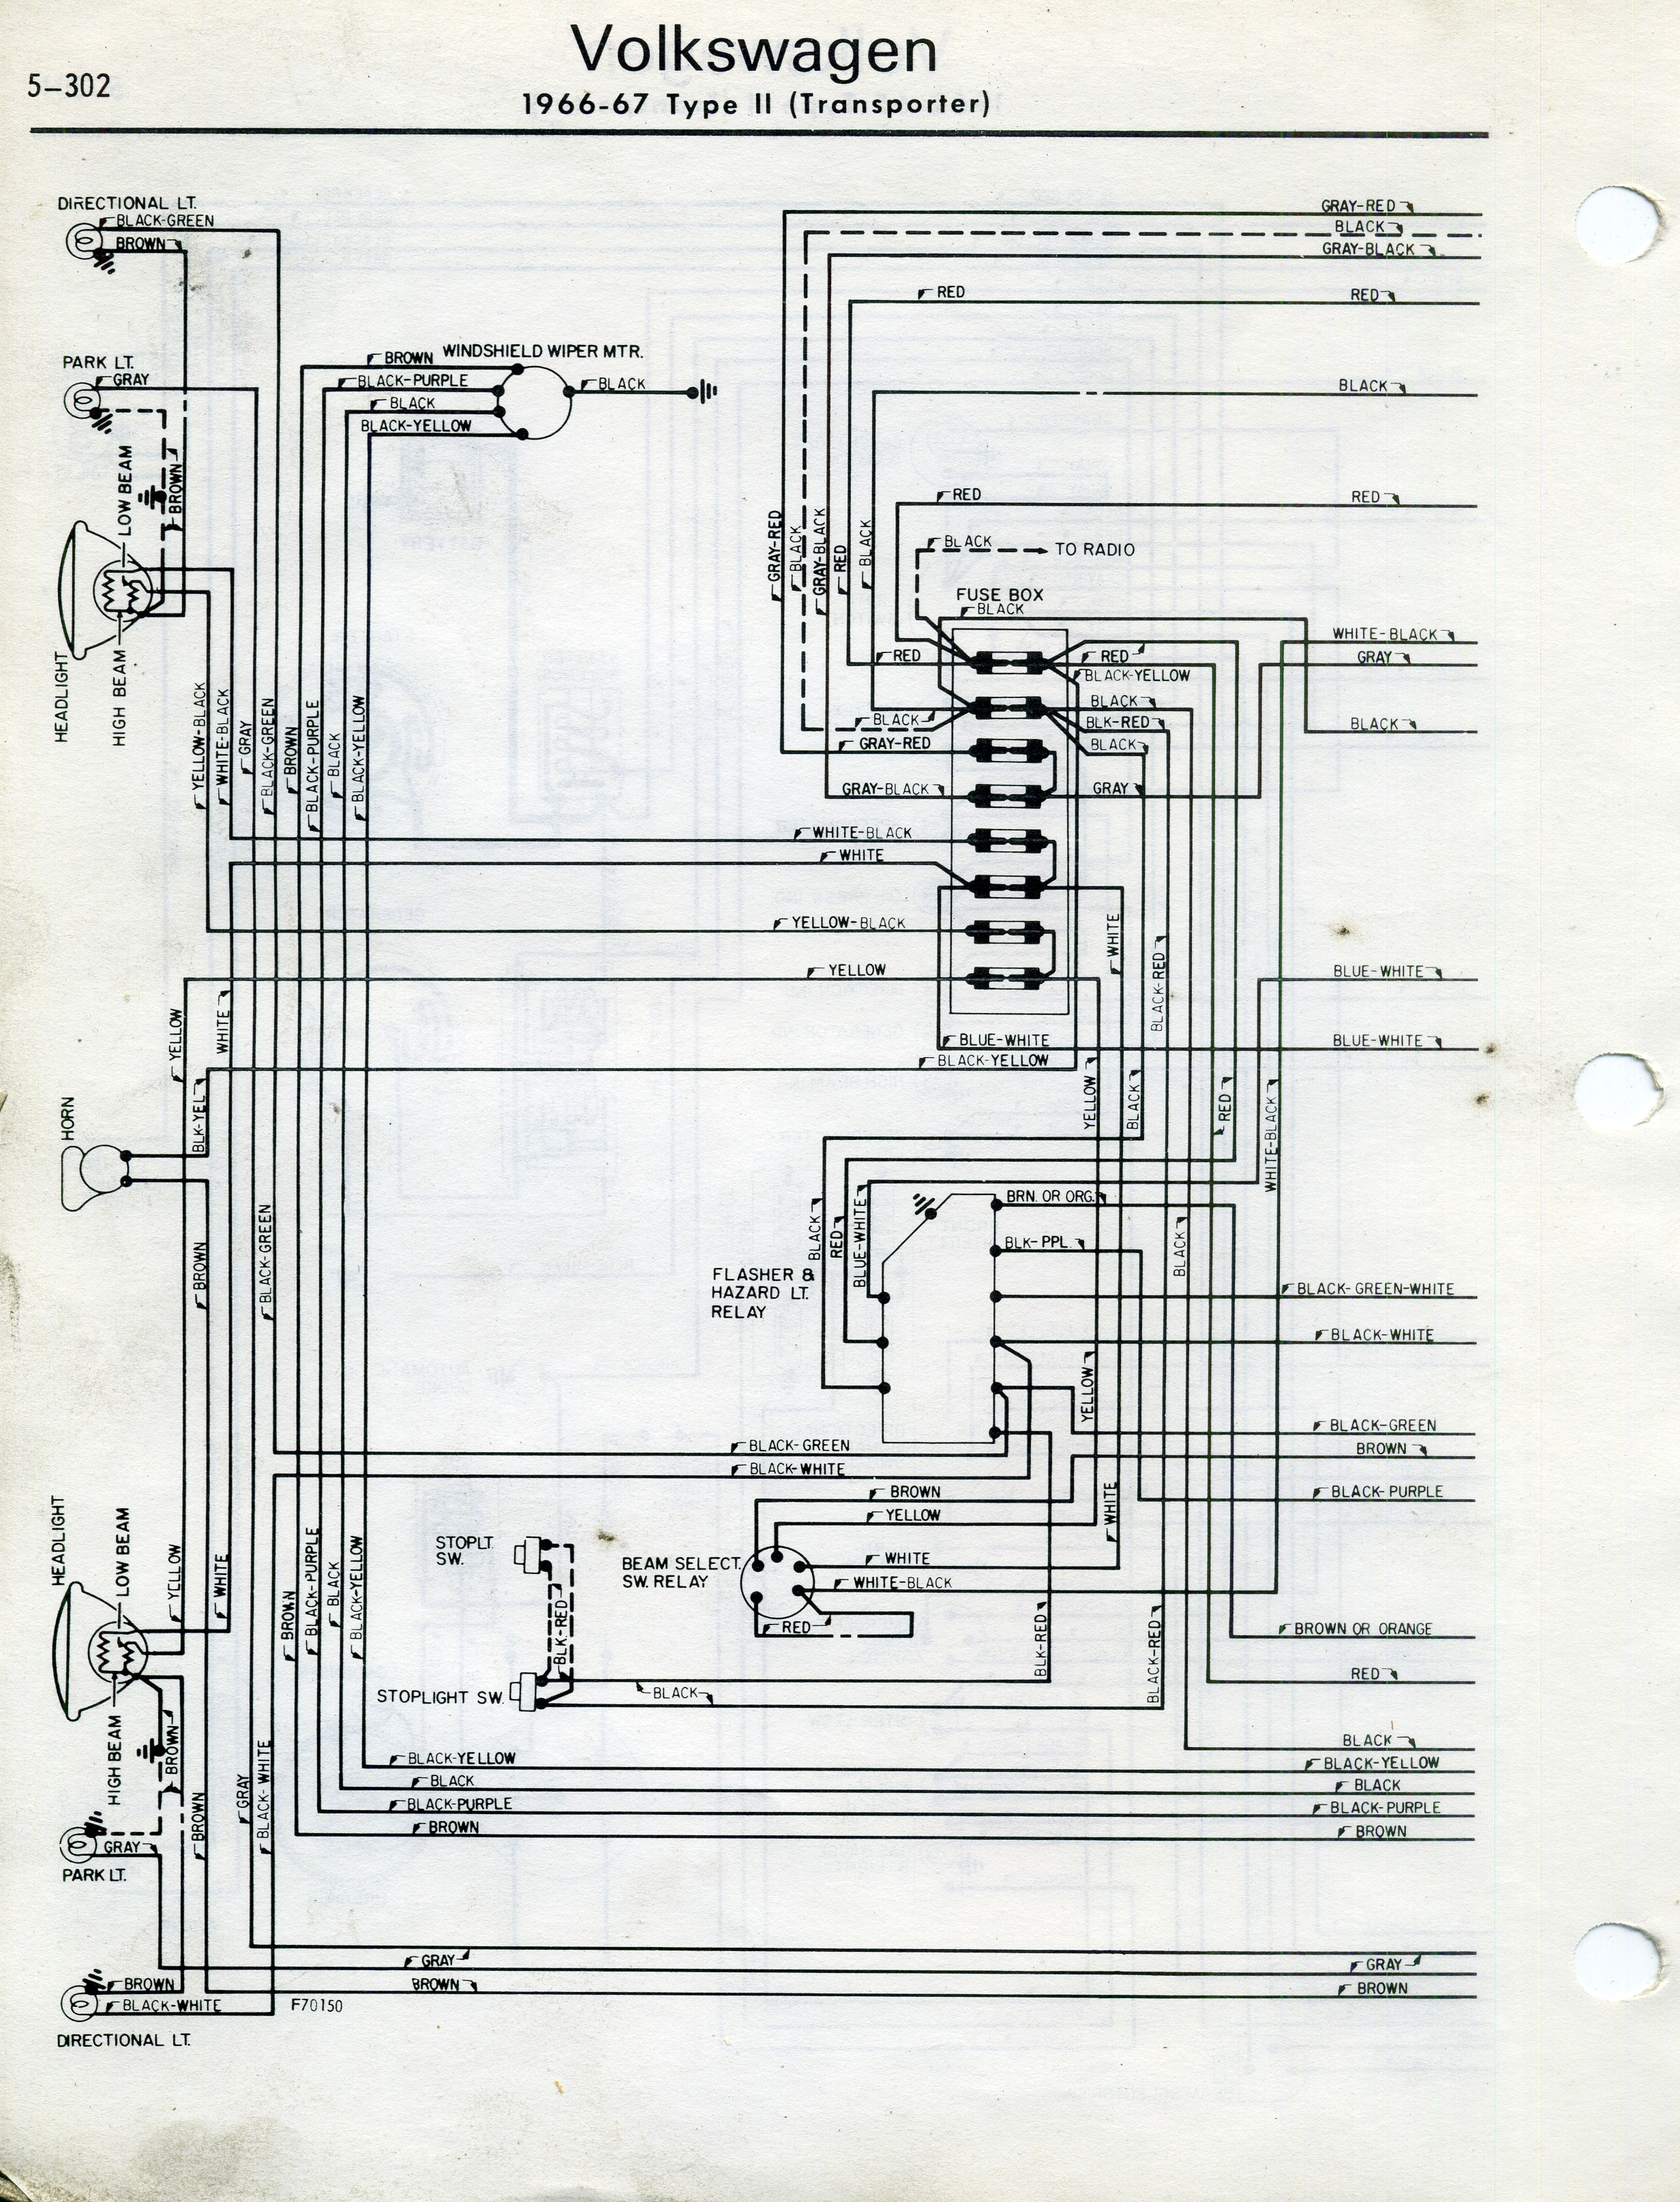 1970 vw transporter wiring diagram ukcar